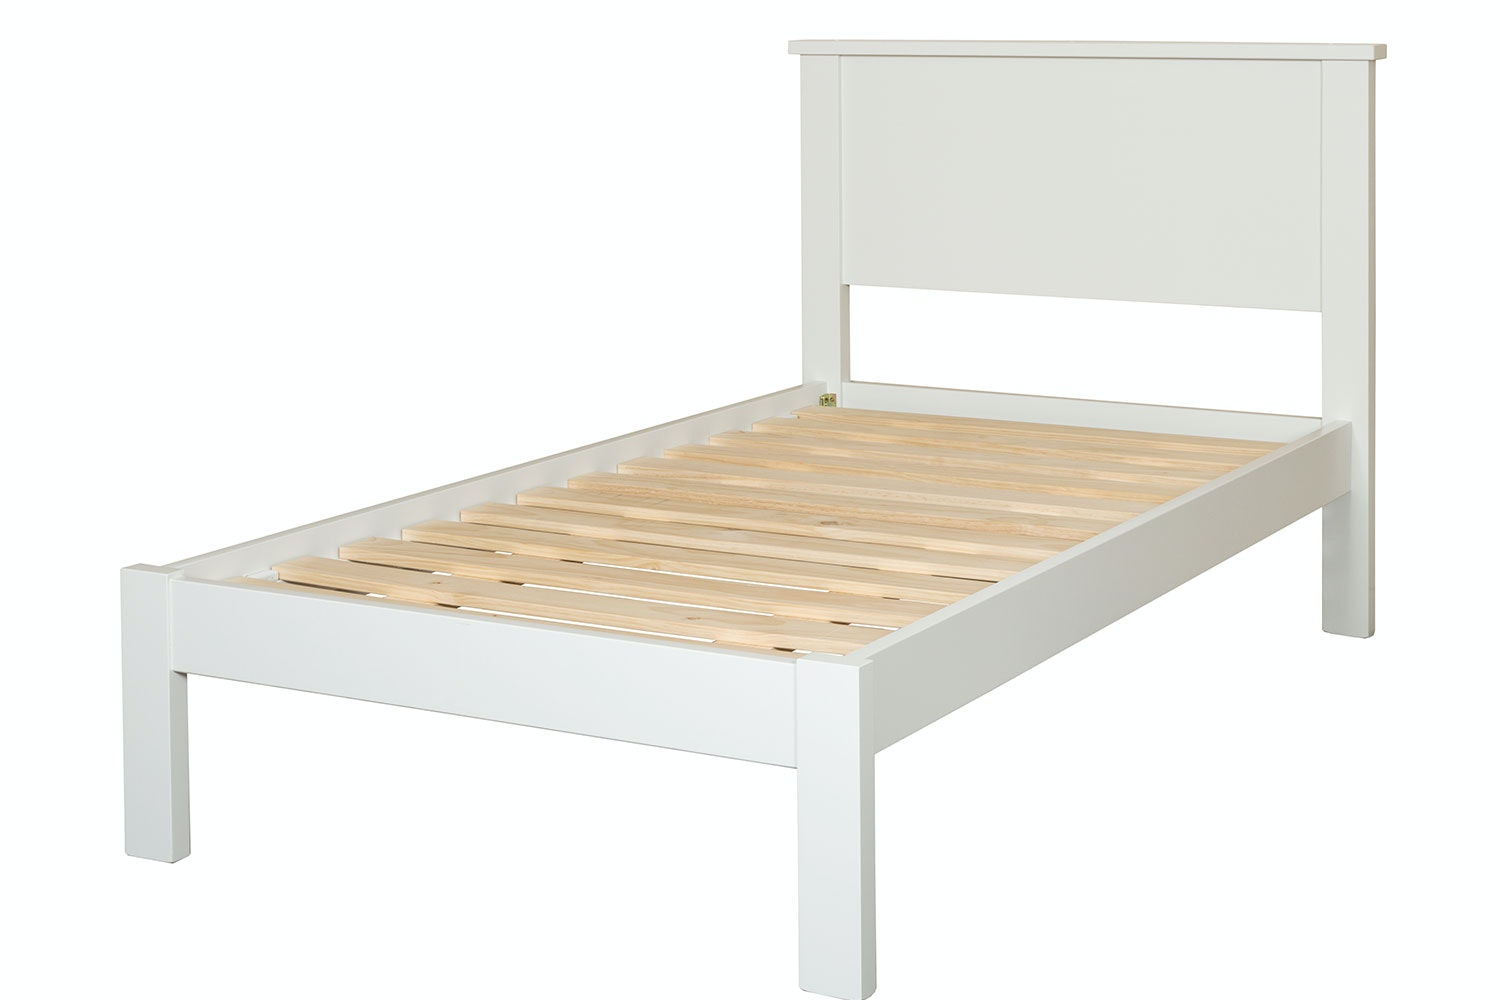 Granville Double Panelled Bed Frame by Coastwood Furniture